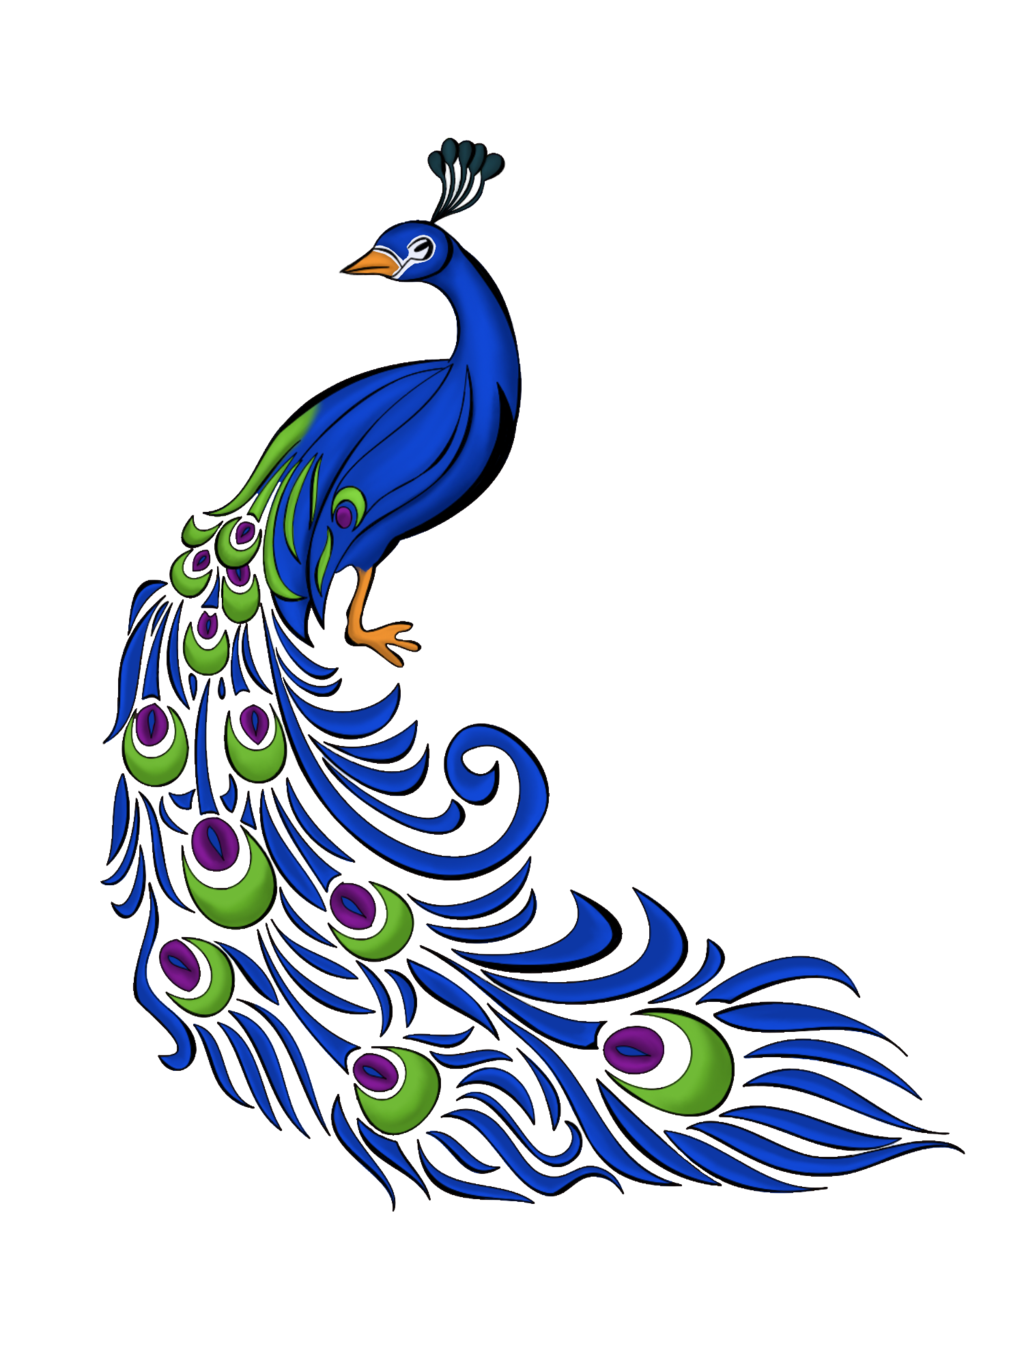 Peacock Feather Vector Free Graphics And Art - ClipArt ...